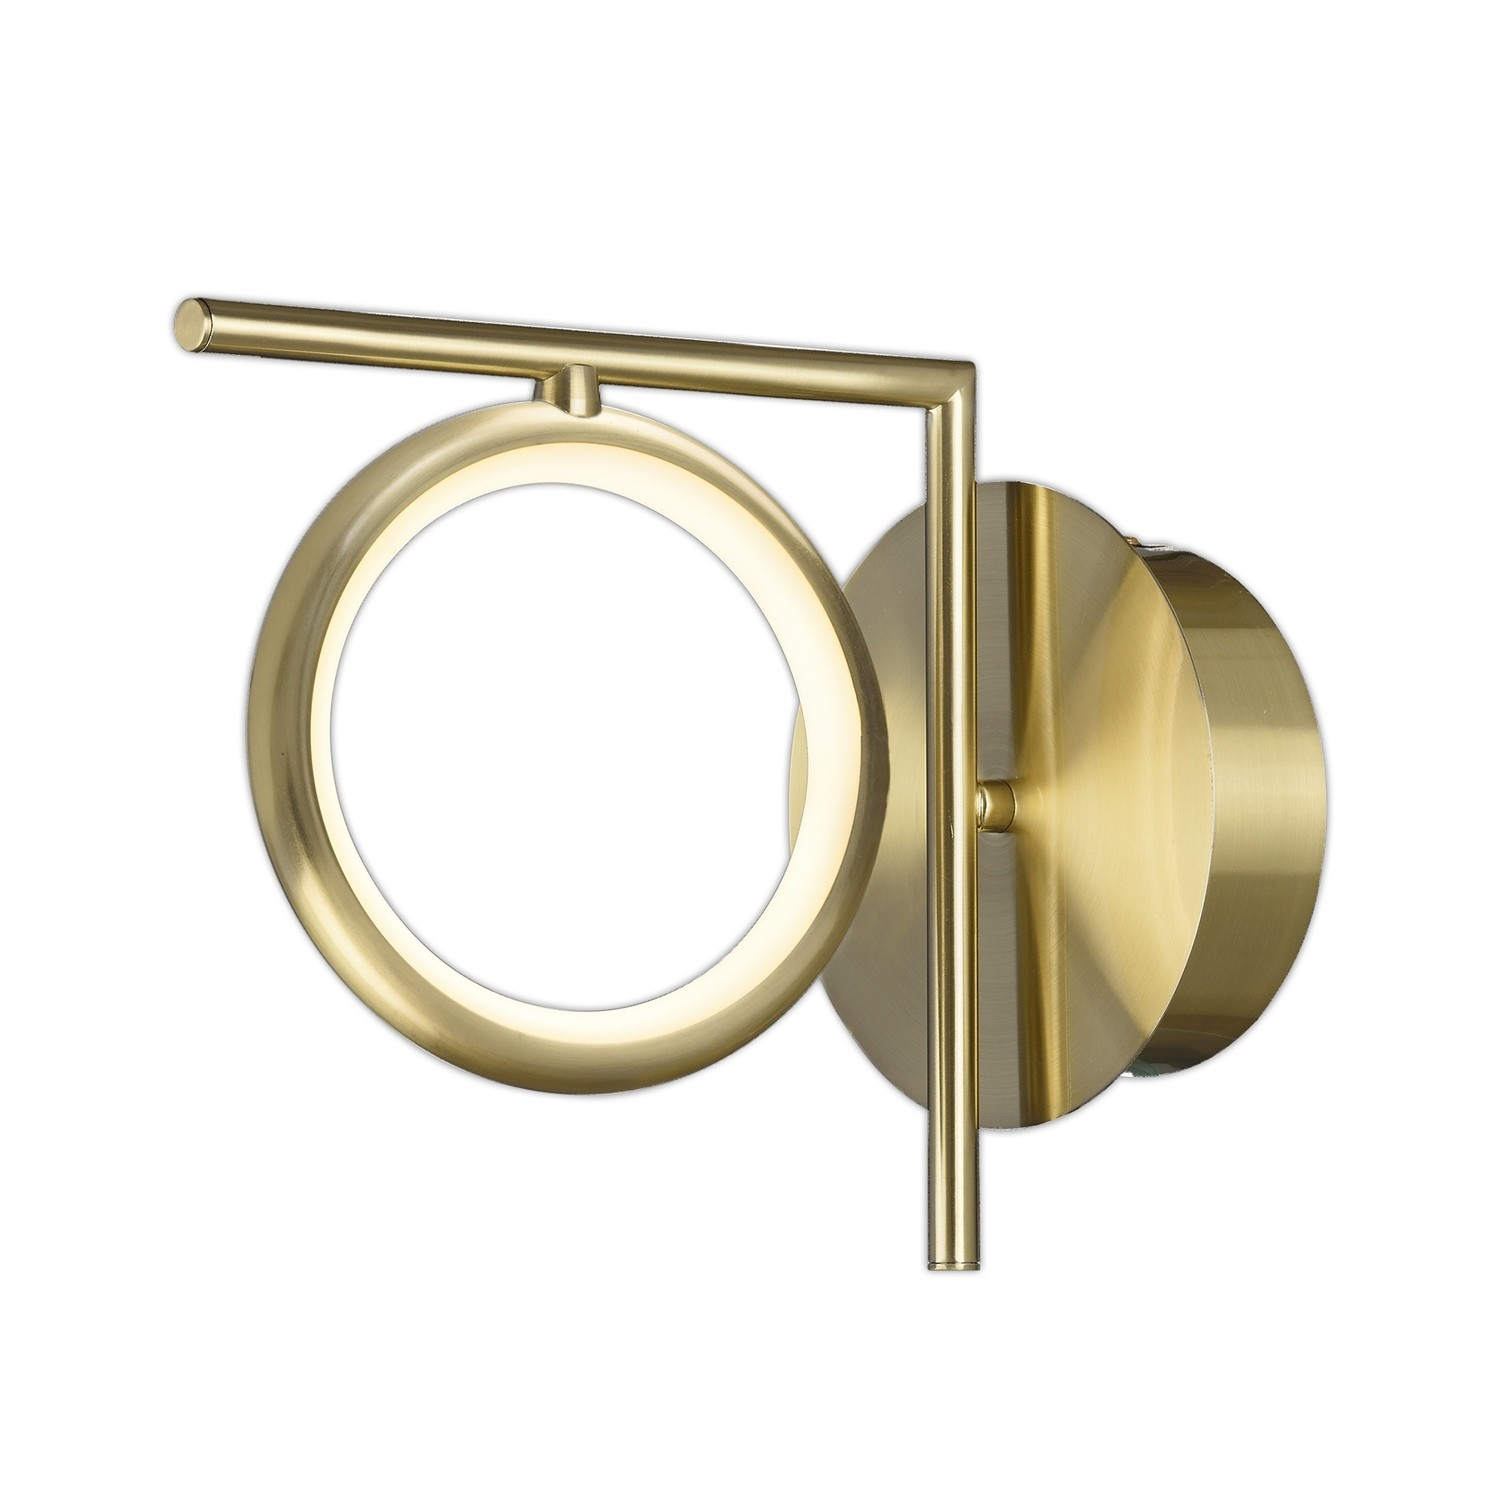 Olimpia Wall Lamp, 8W LED, 3000K, 600lm, IP20, Satin Gold, 3yrs Warranty